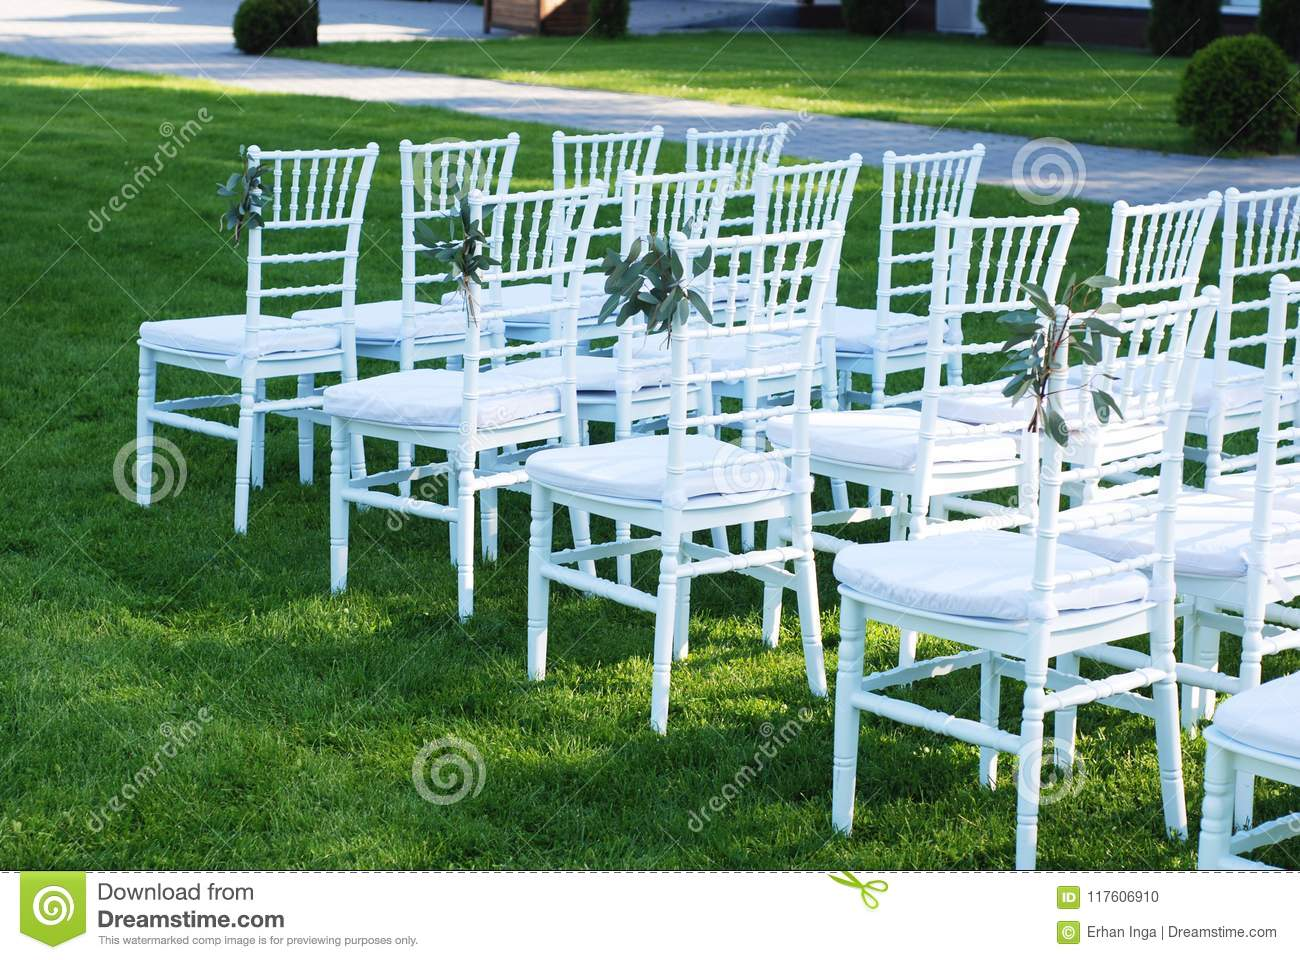 White Chairs At The Outdoor Wedding Ceremony Green Grass Background Party Celebrate Wedding Event Stock Photo Image Of Couple Celebration 117606910